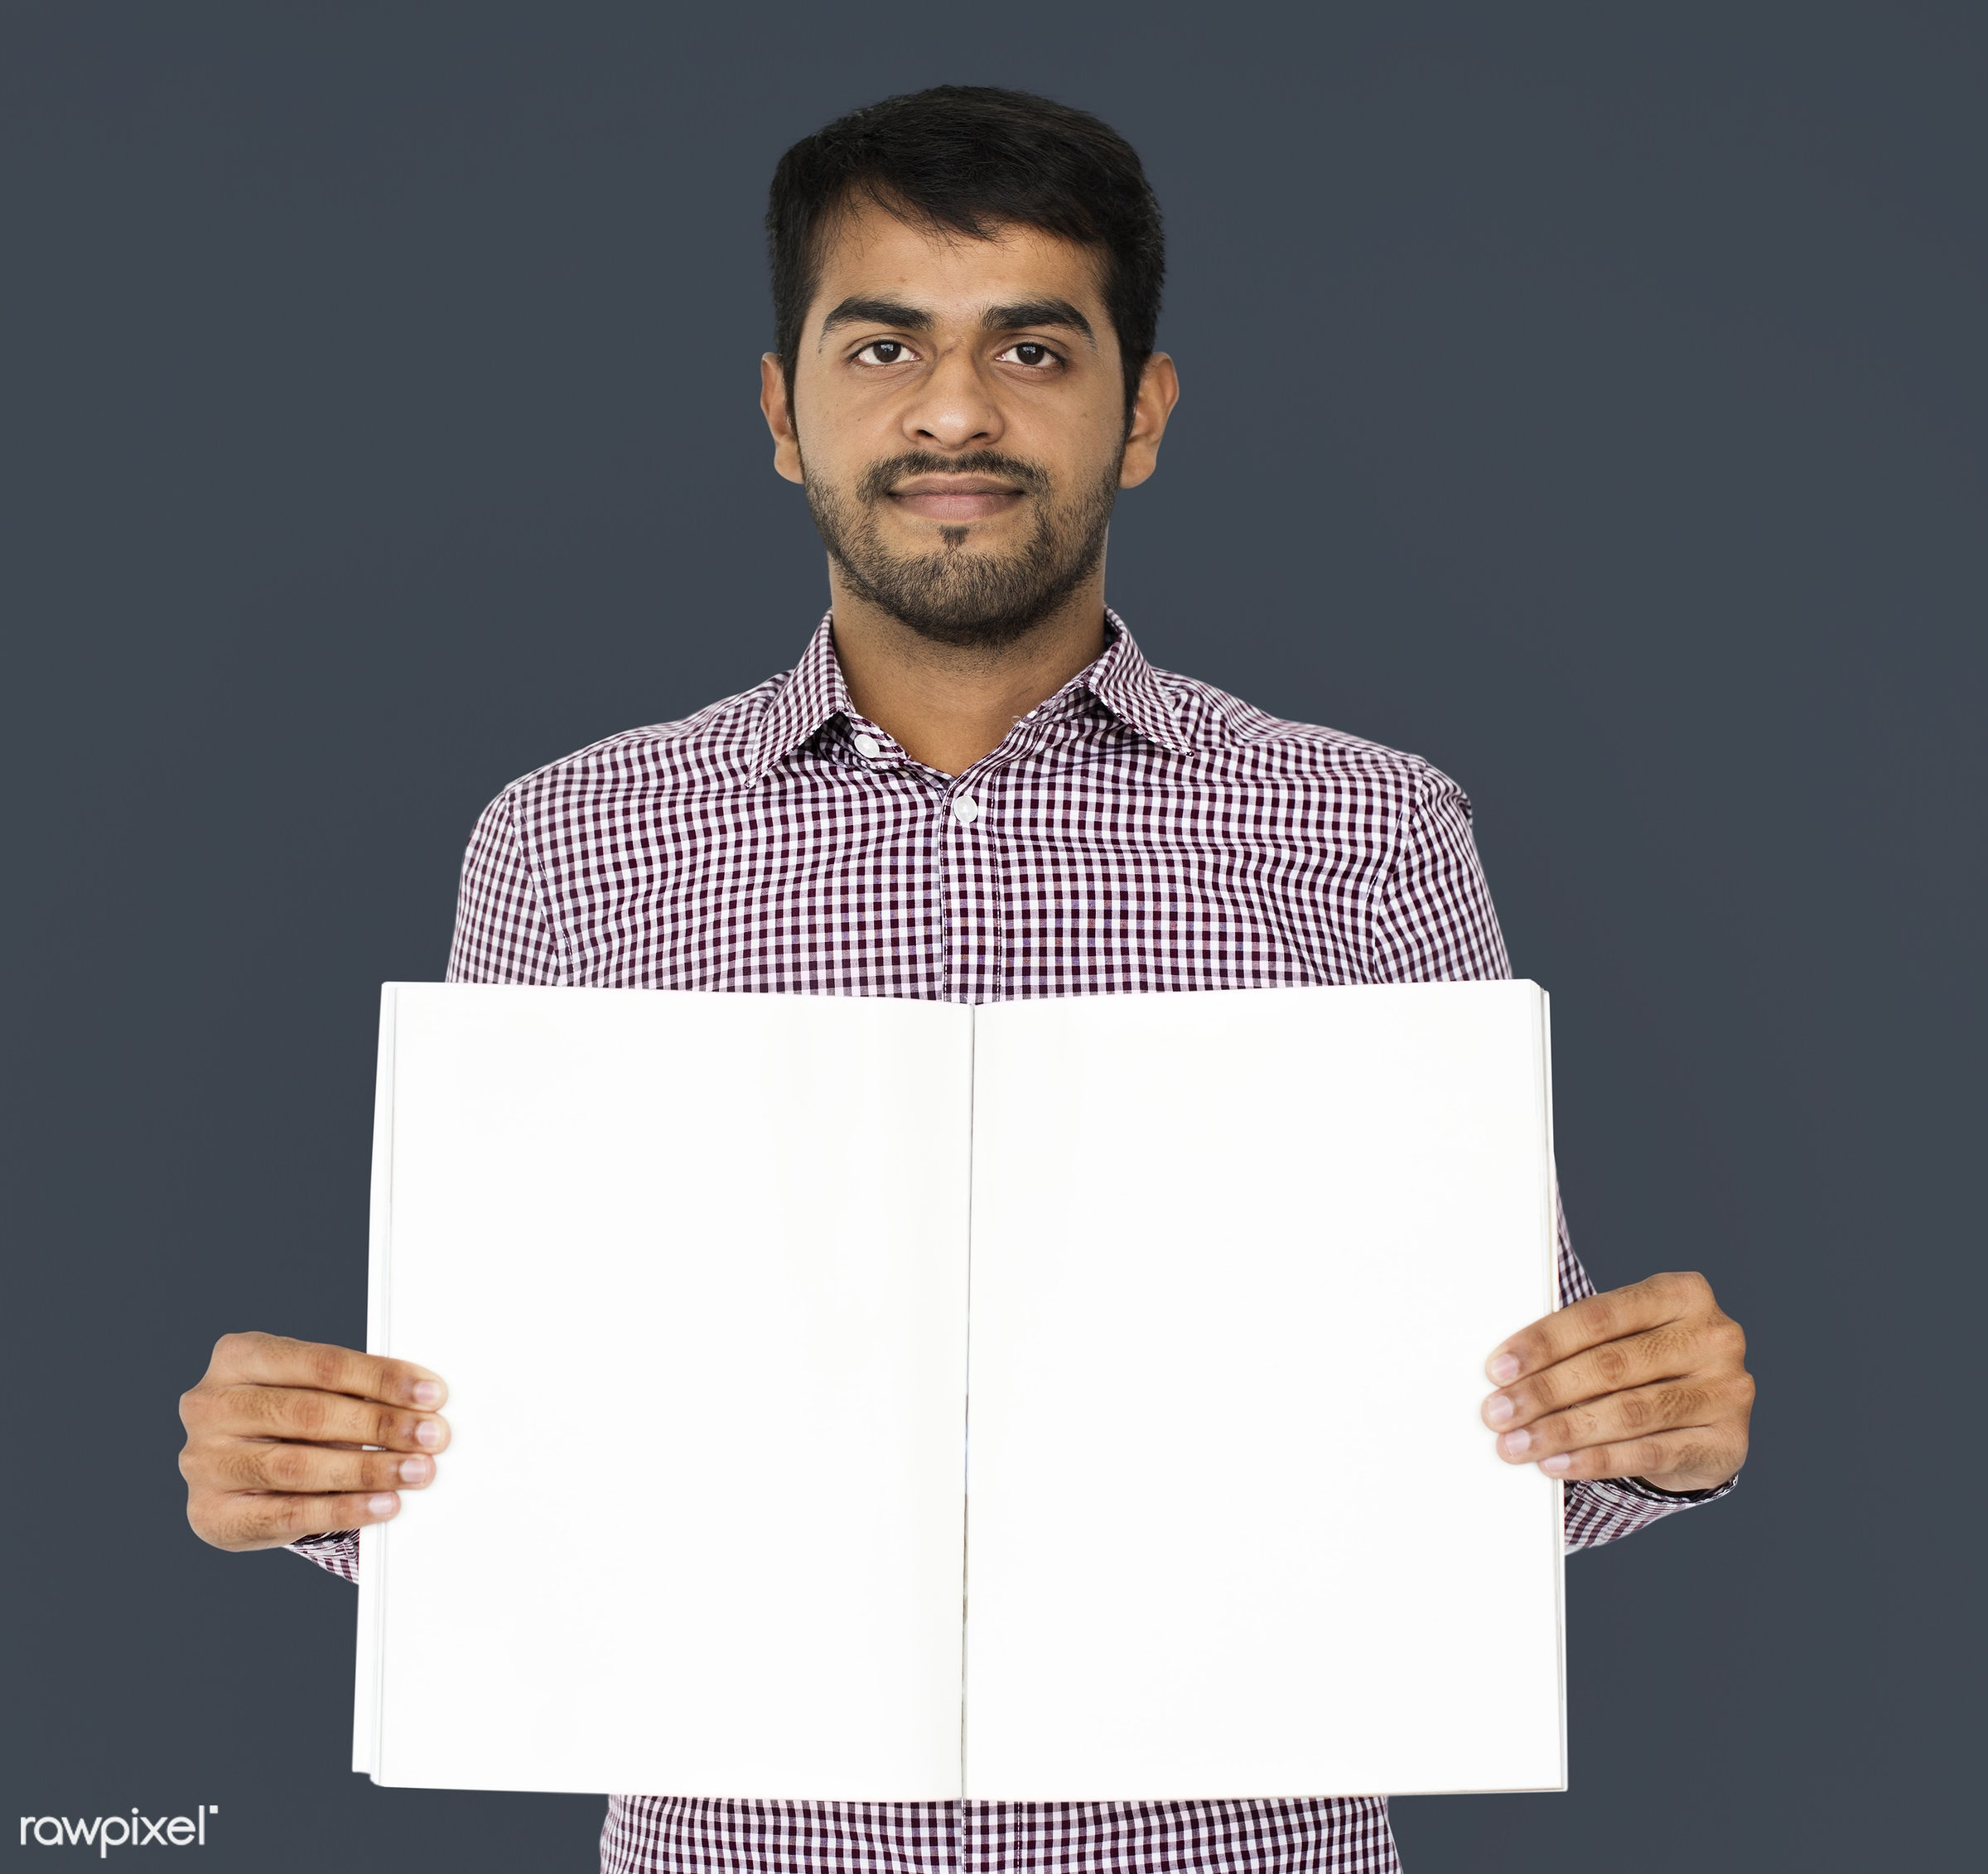 expression, studio, model, person, holding, copyspace, paper, advertising, people, asian, casual, empty, showing, sheet, man...